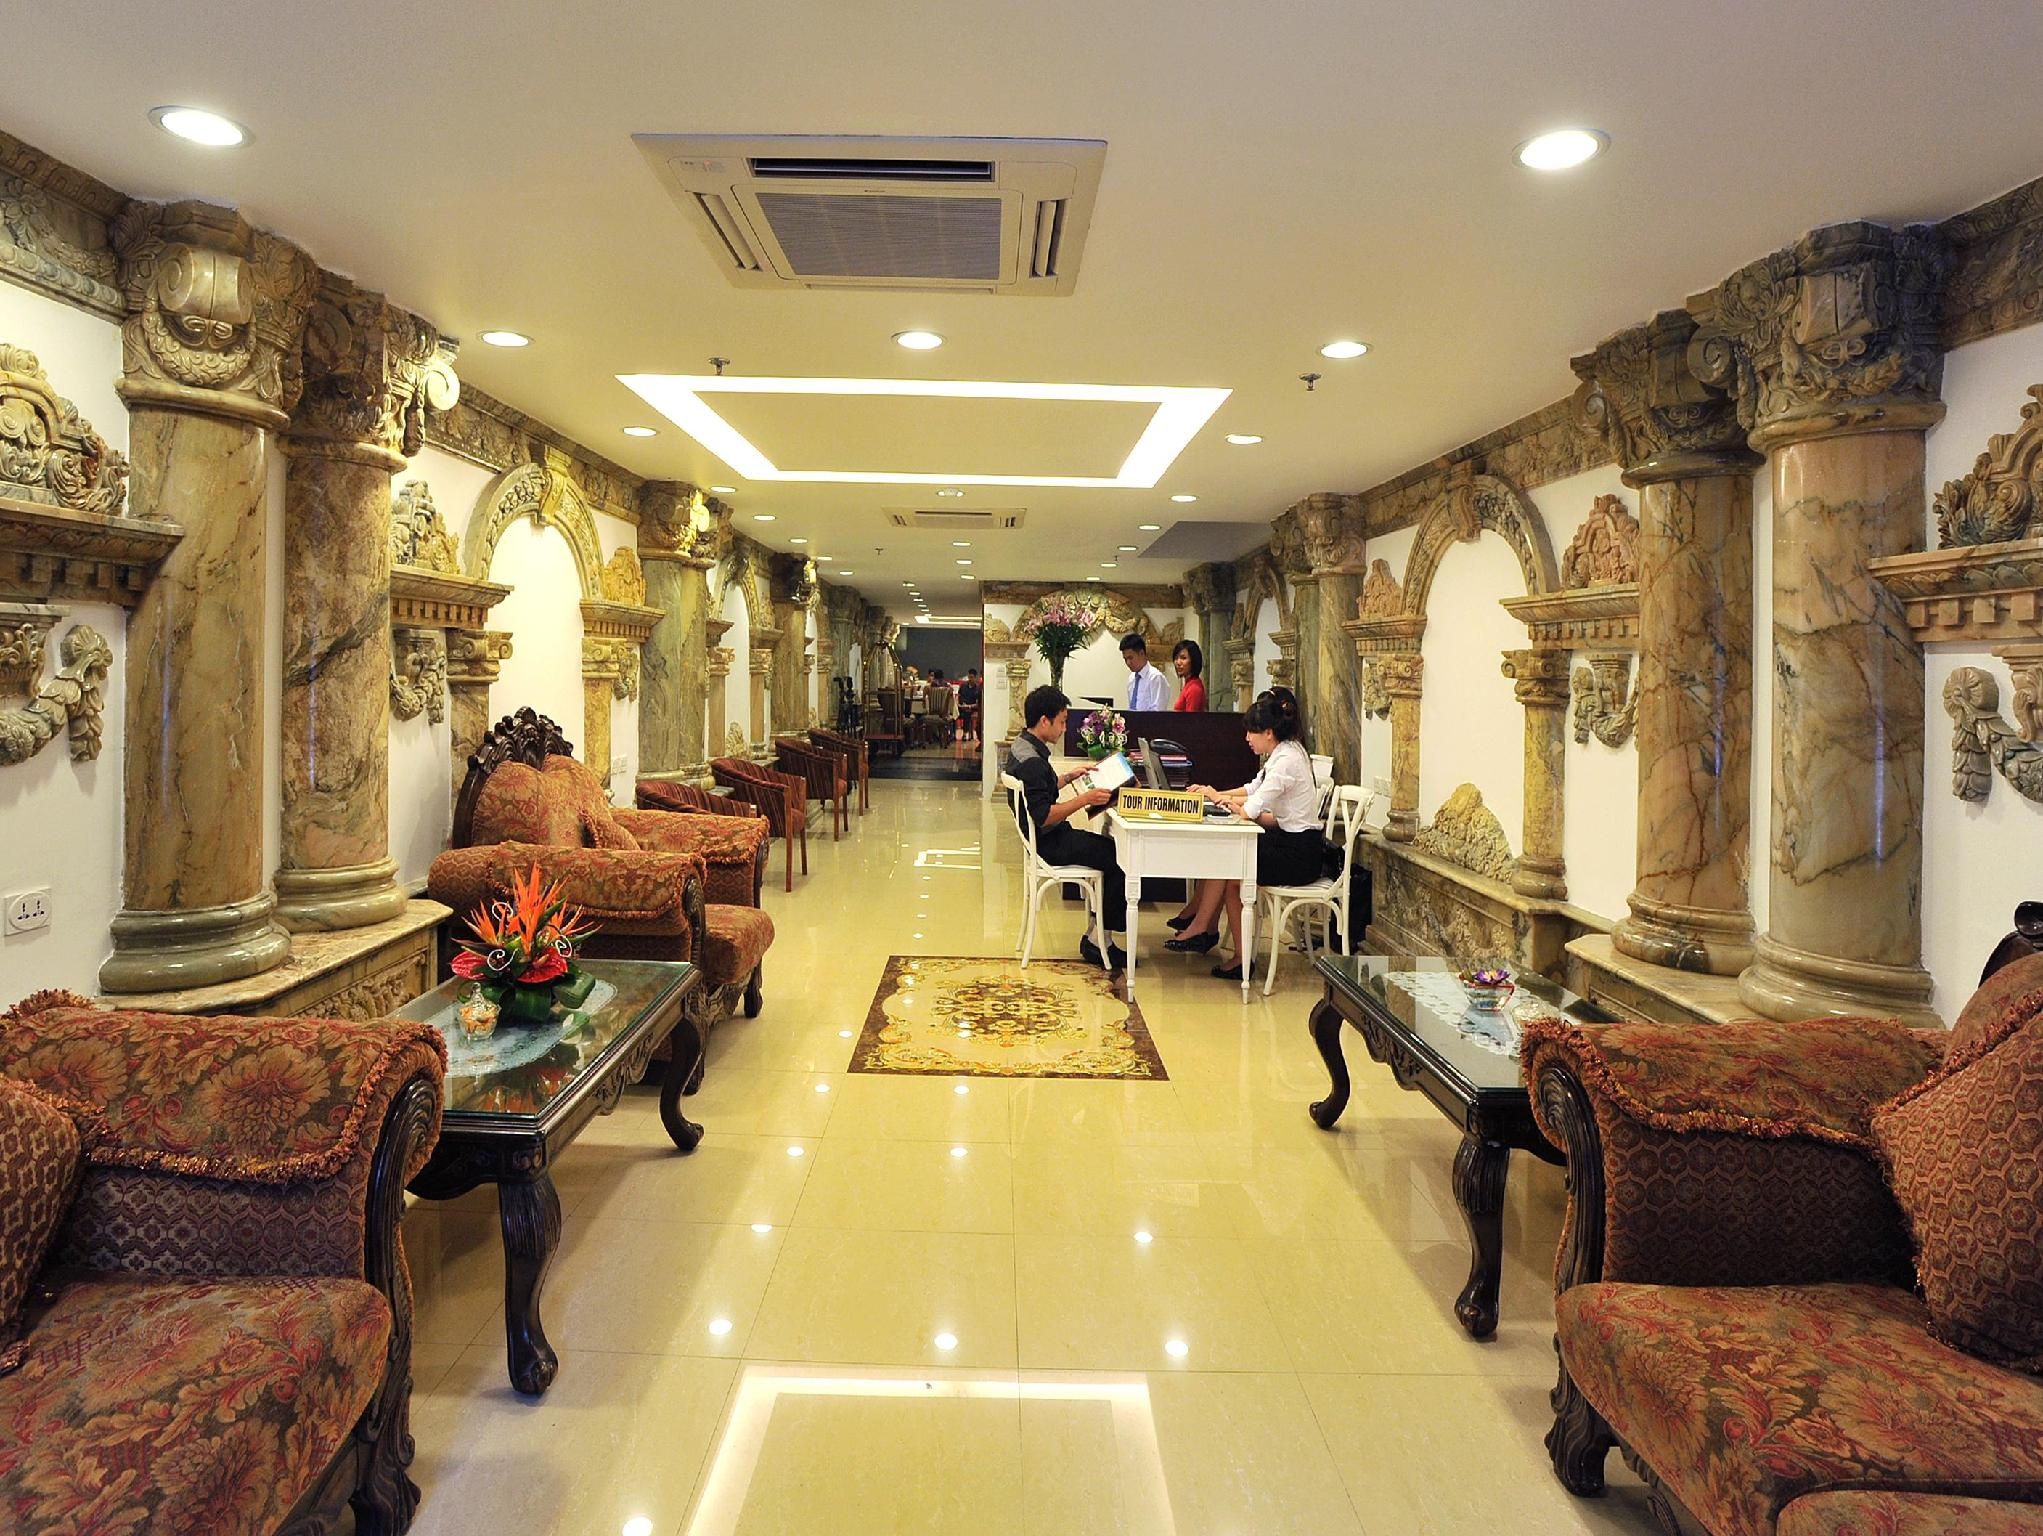 Best Price on Hanoi Legacy Hotel - Hang Bac in Hanoi + Reviews